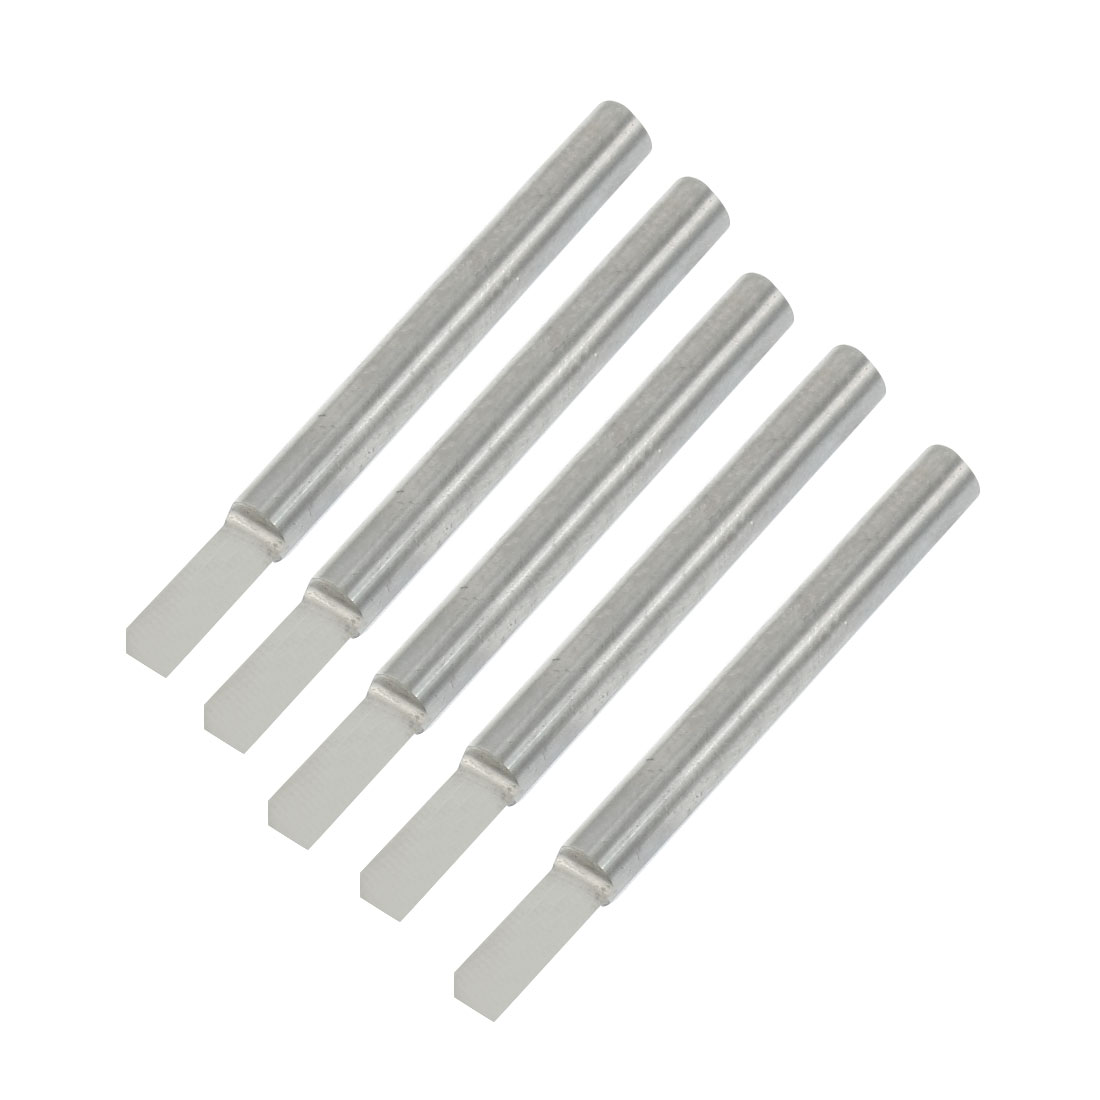 "5 Pcs 5/32"" Shank 3.5mm Blade Width Single Flute Straight Router Bits"